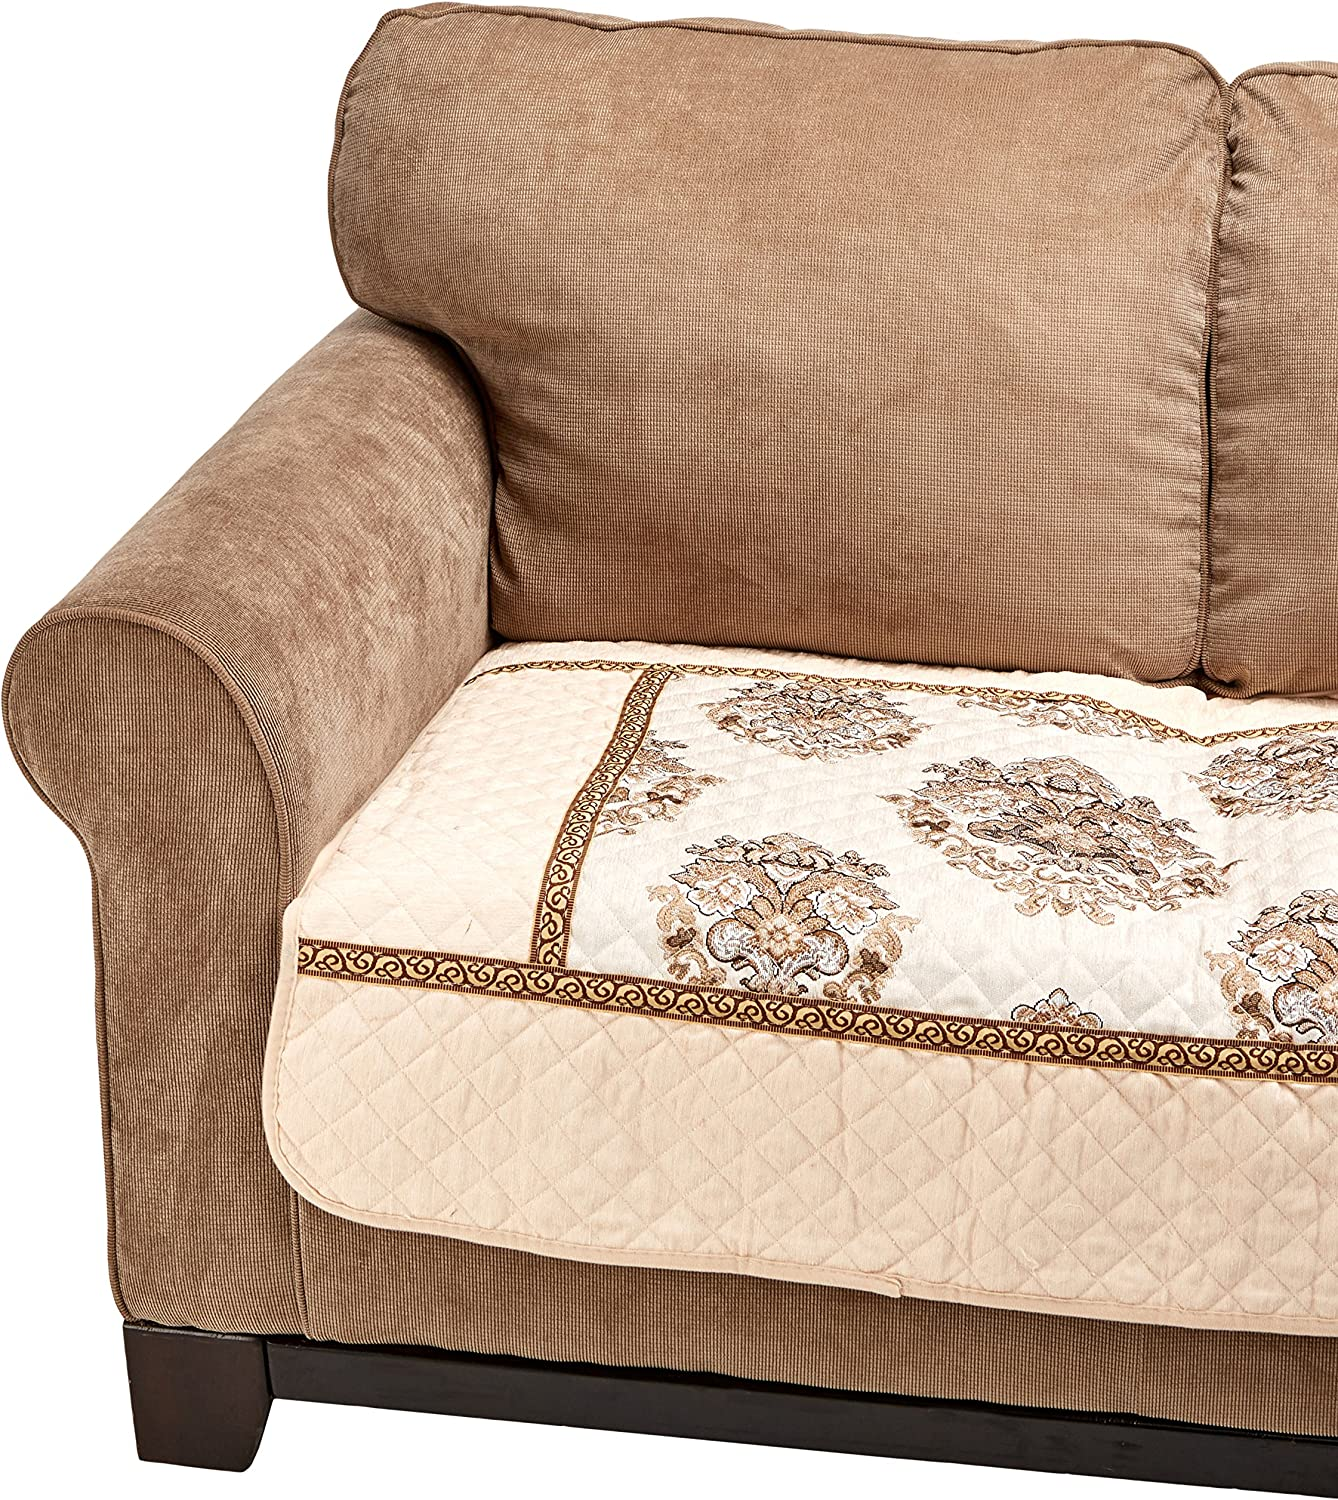 OctoRose Ofit Chenille Quilted Sectional Sofa Throw Pads Furniture Protector Sold by Piece Rather Than Set (Beige, 35x62)